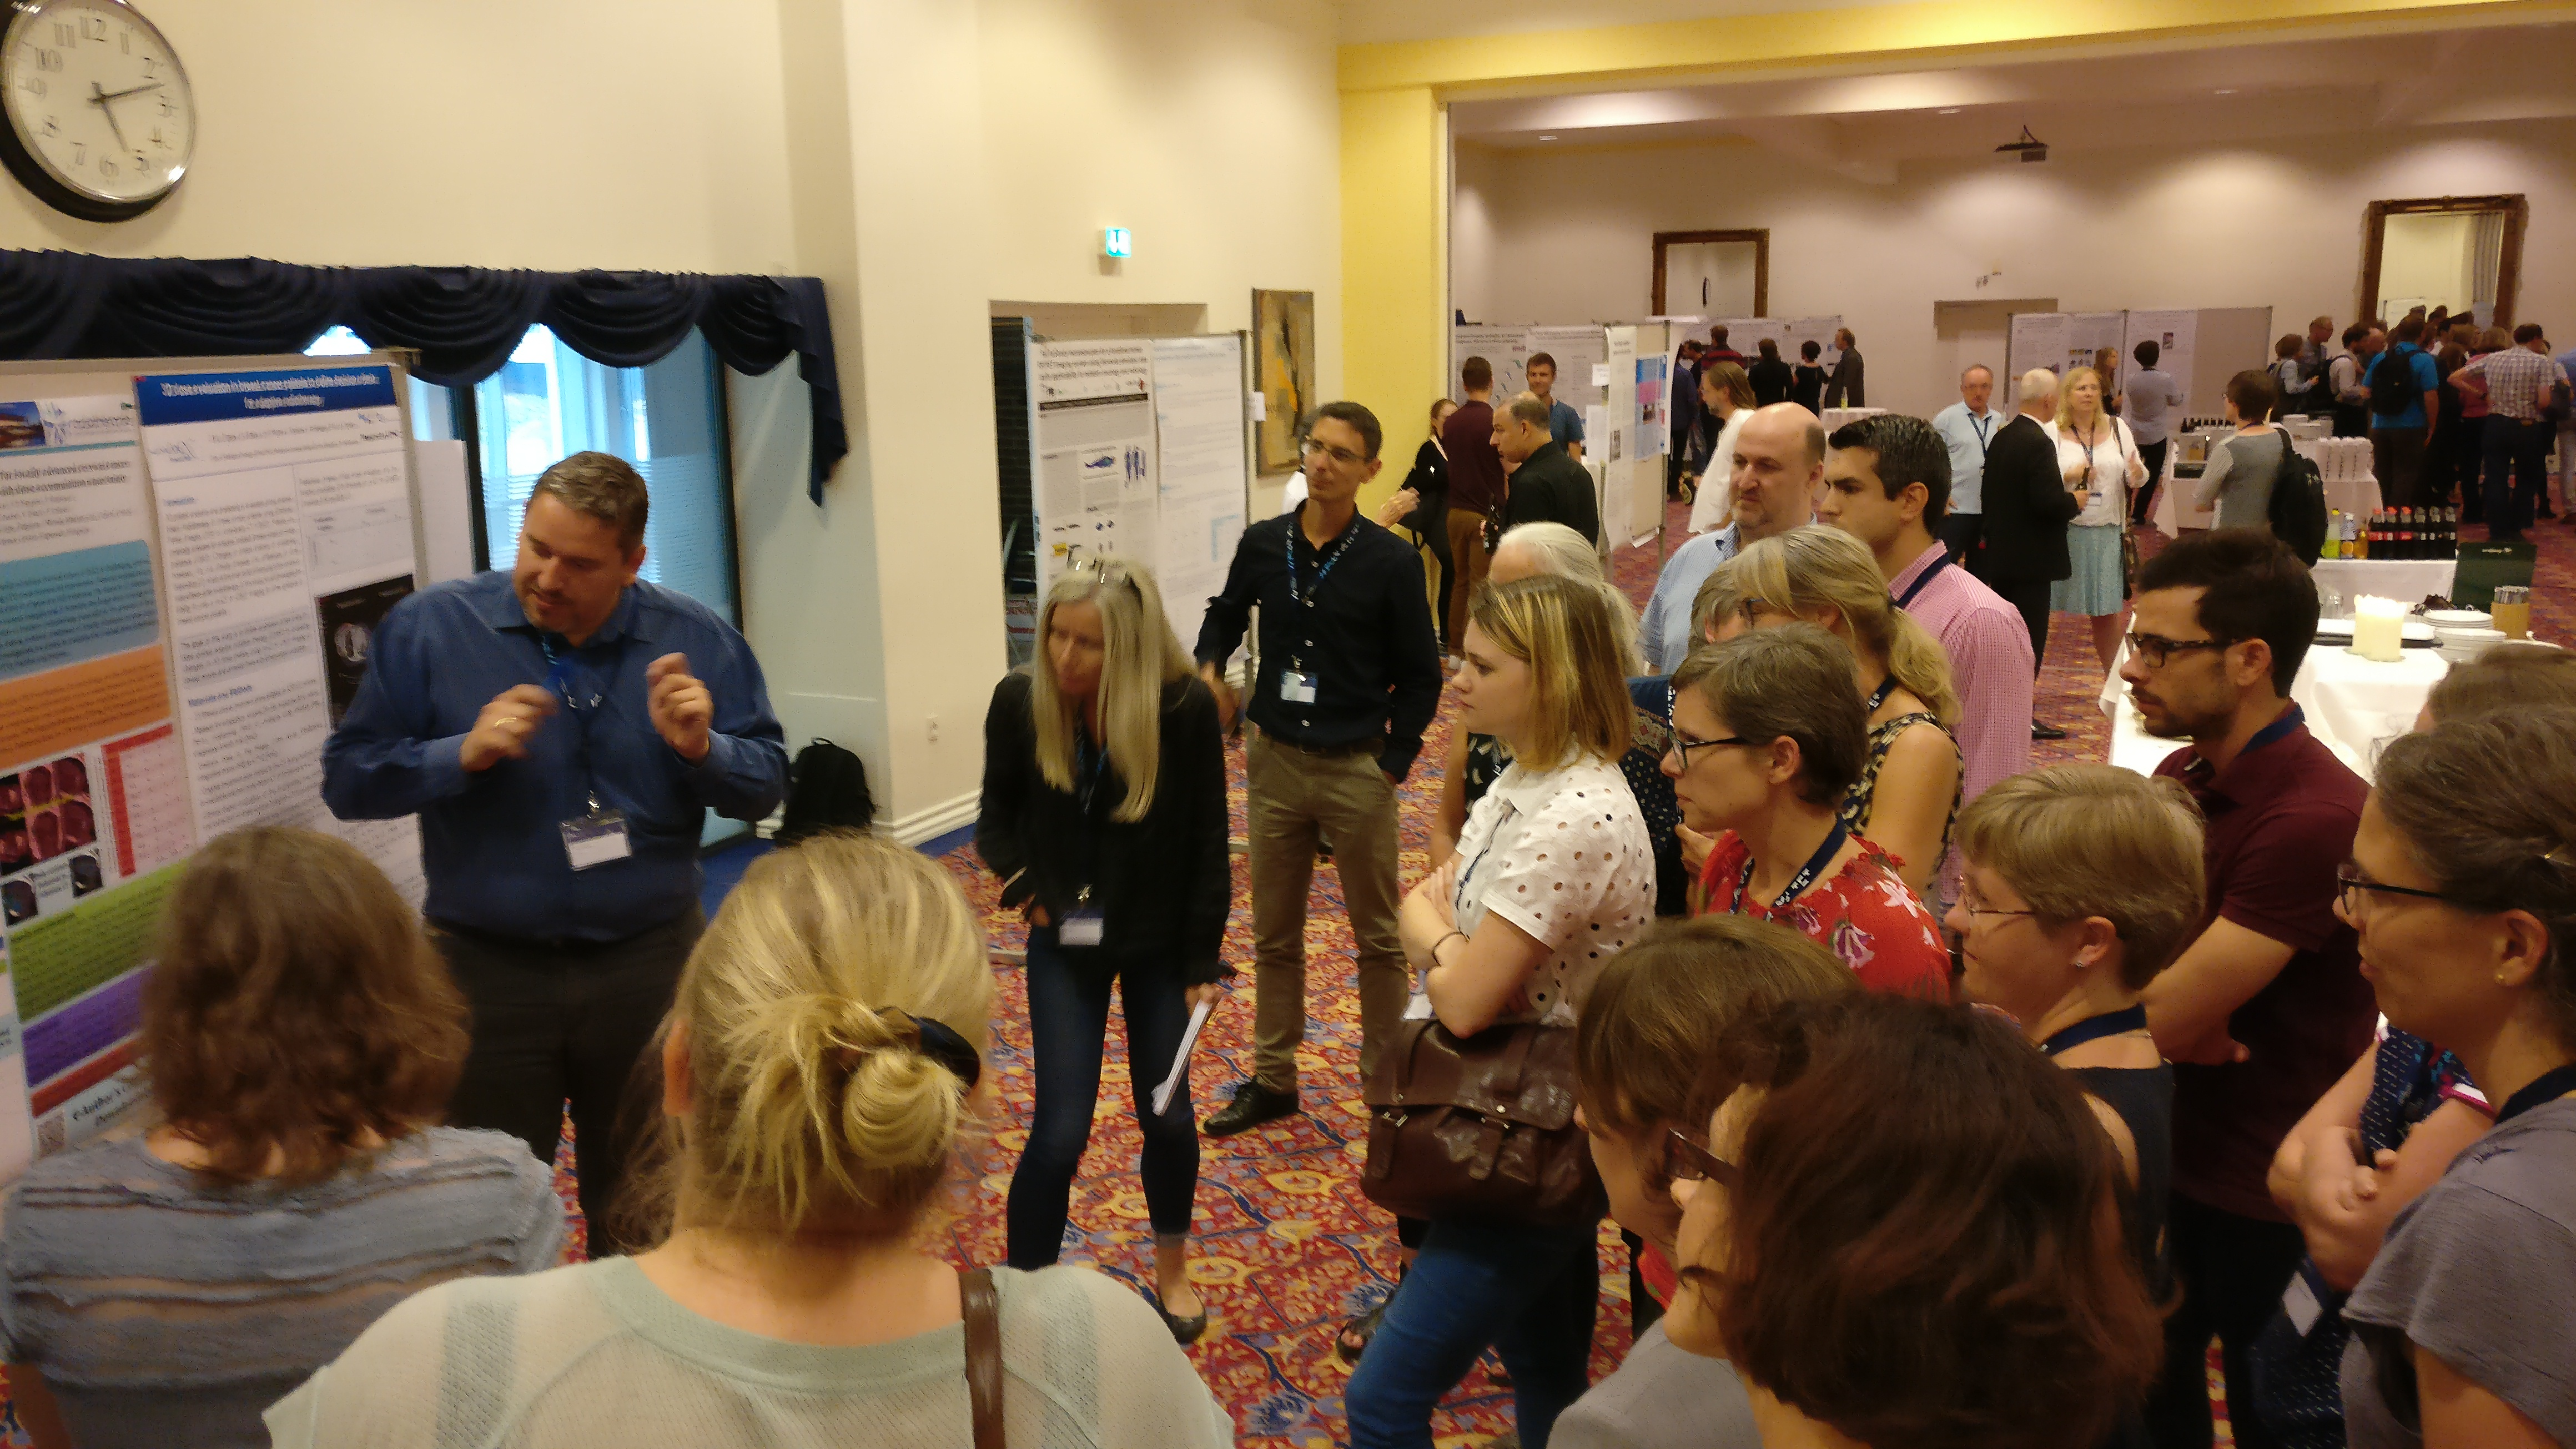 Poster discussion at BiGART2017